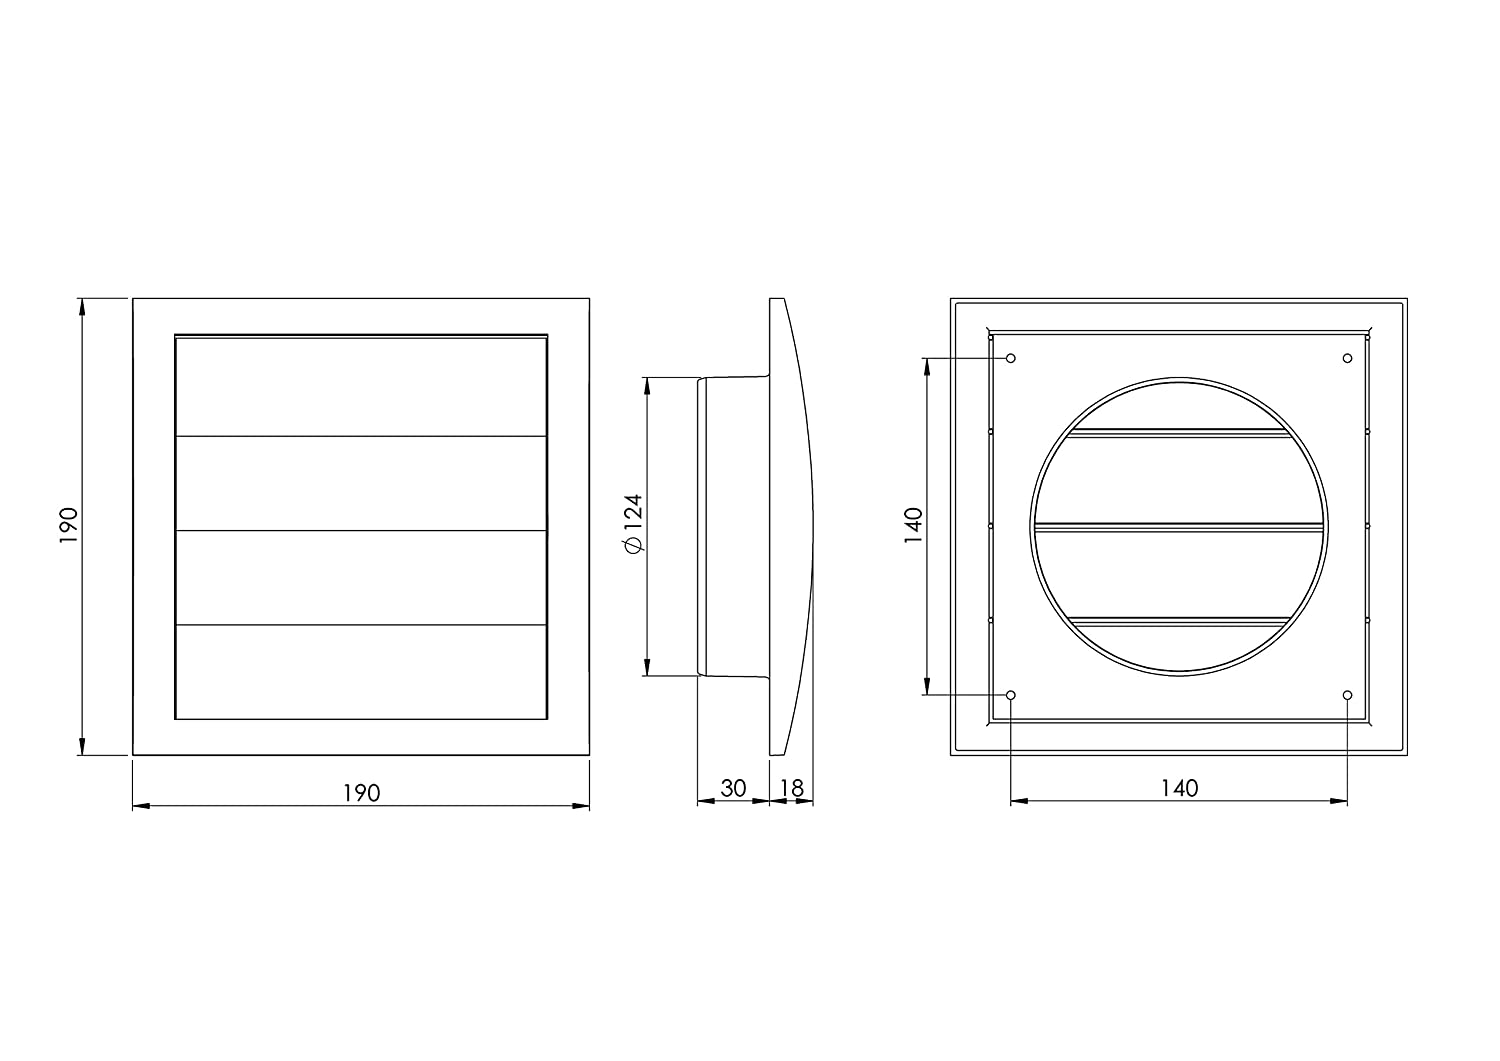 12Zp Ventilation Grille with Movable Slats / Blind End Grille / Backflow Flap Diameter 125 mm / 190 x 190 mm / Grey Europlast